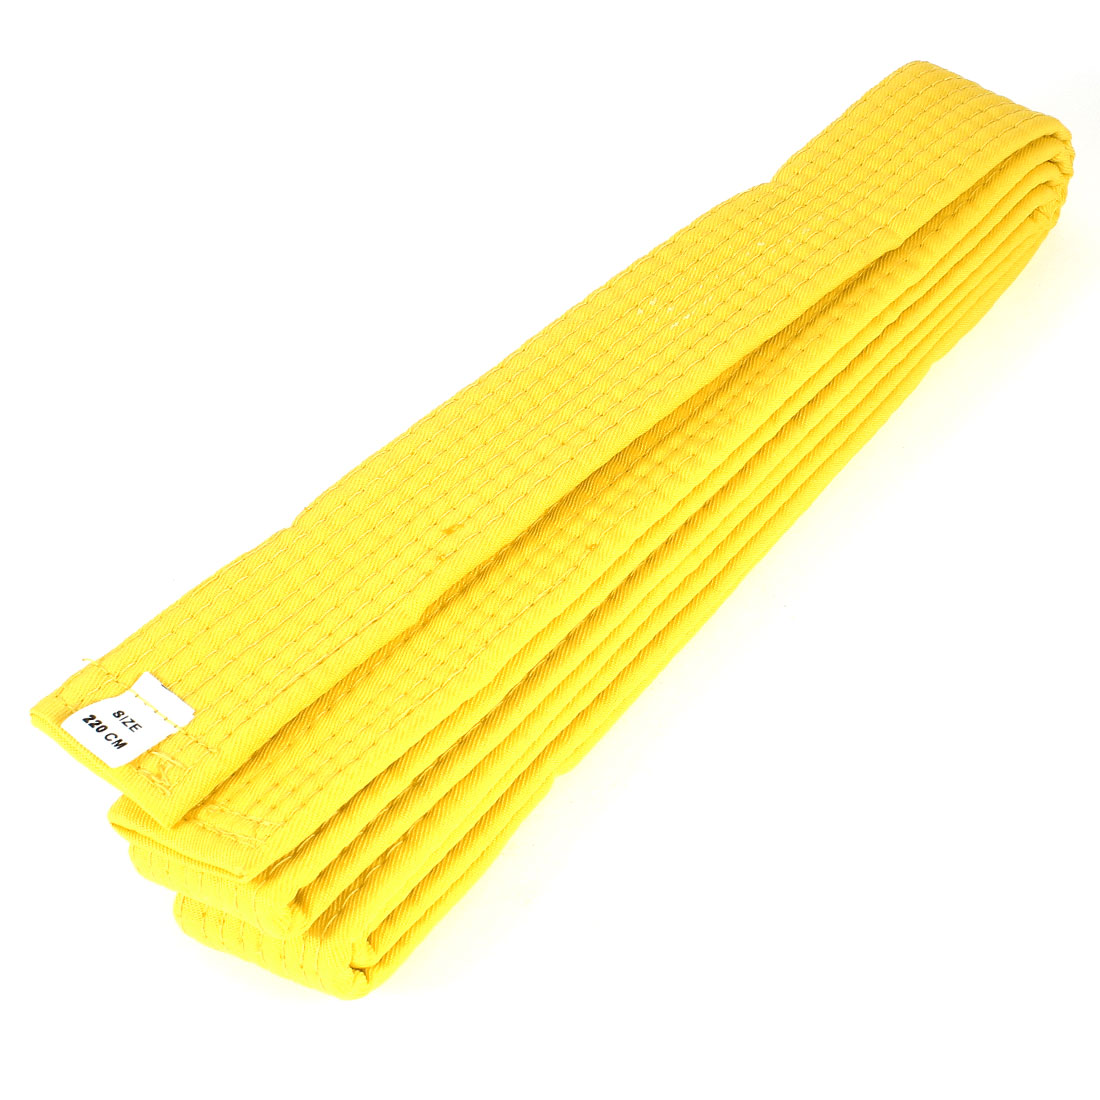 Yellow 220cm Length Flexible Karate TaeKwonDo Judo Belt